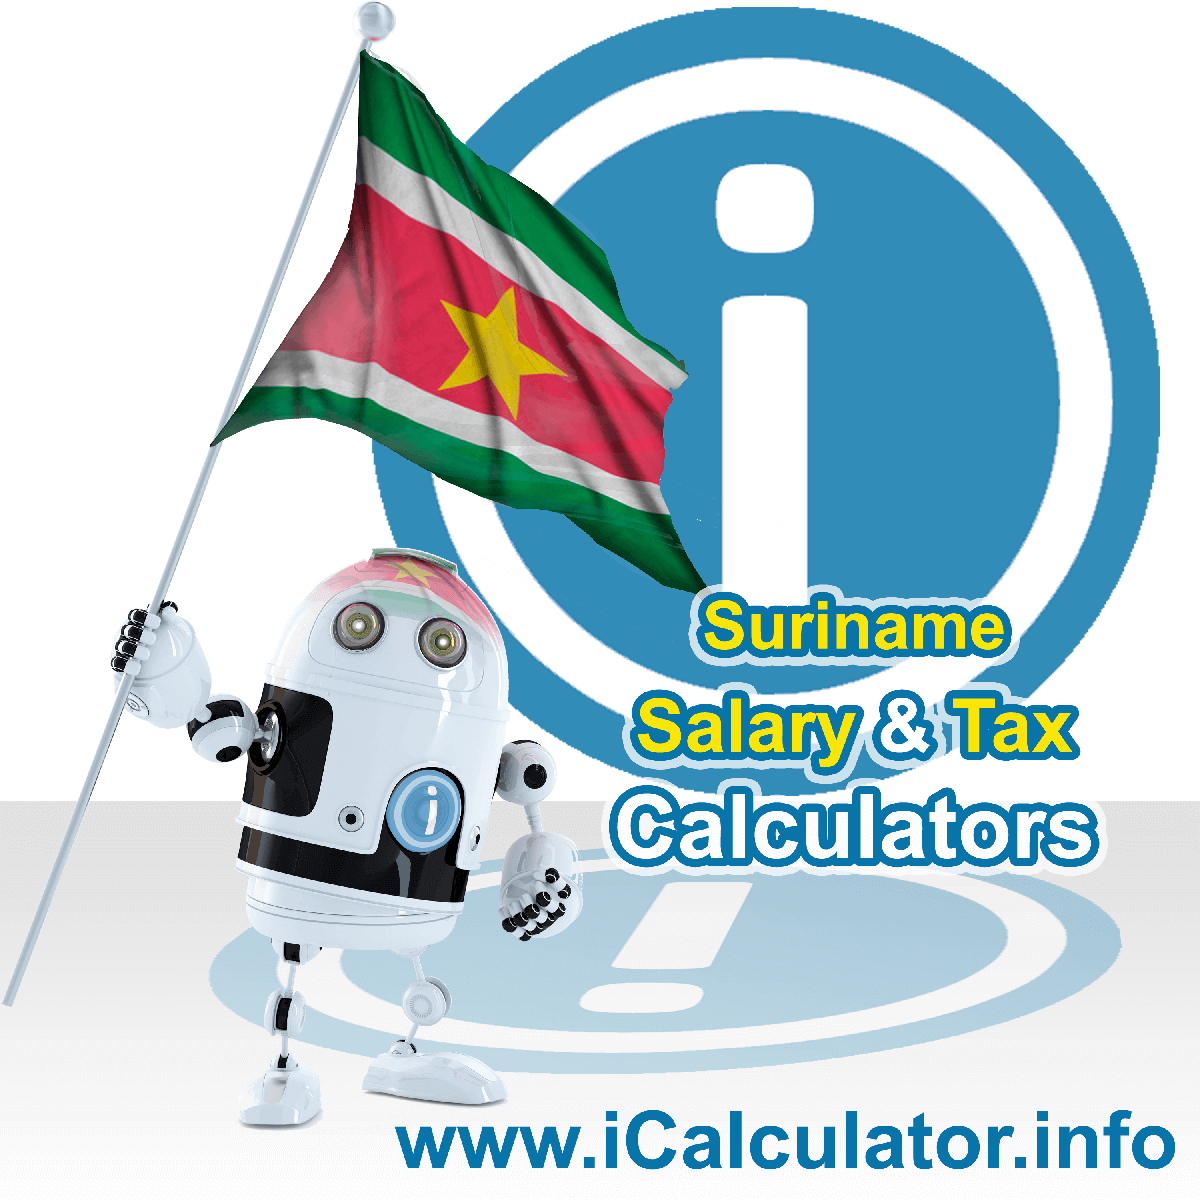 Suriname Wage Calculator. This image shows the Suriname flag and information relating to the tax formula for the Suriname Tax Calculator